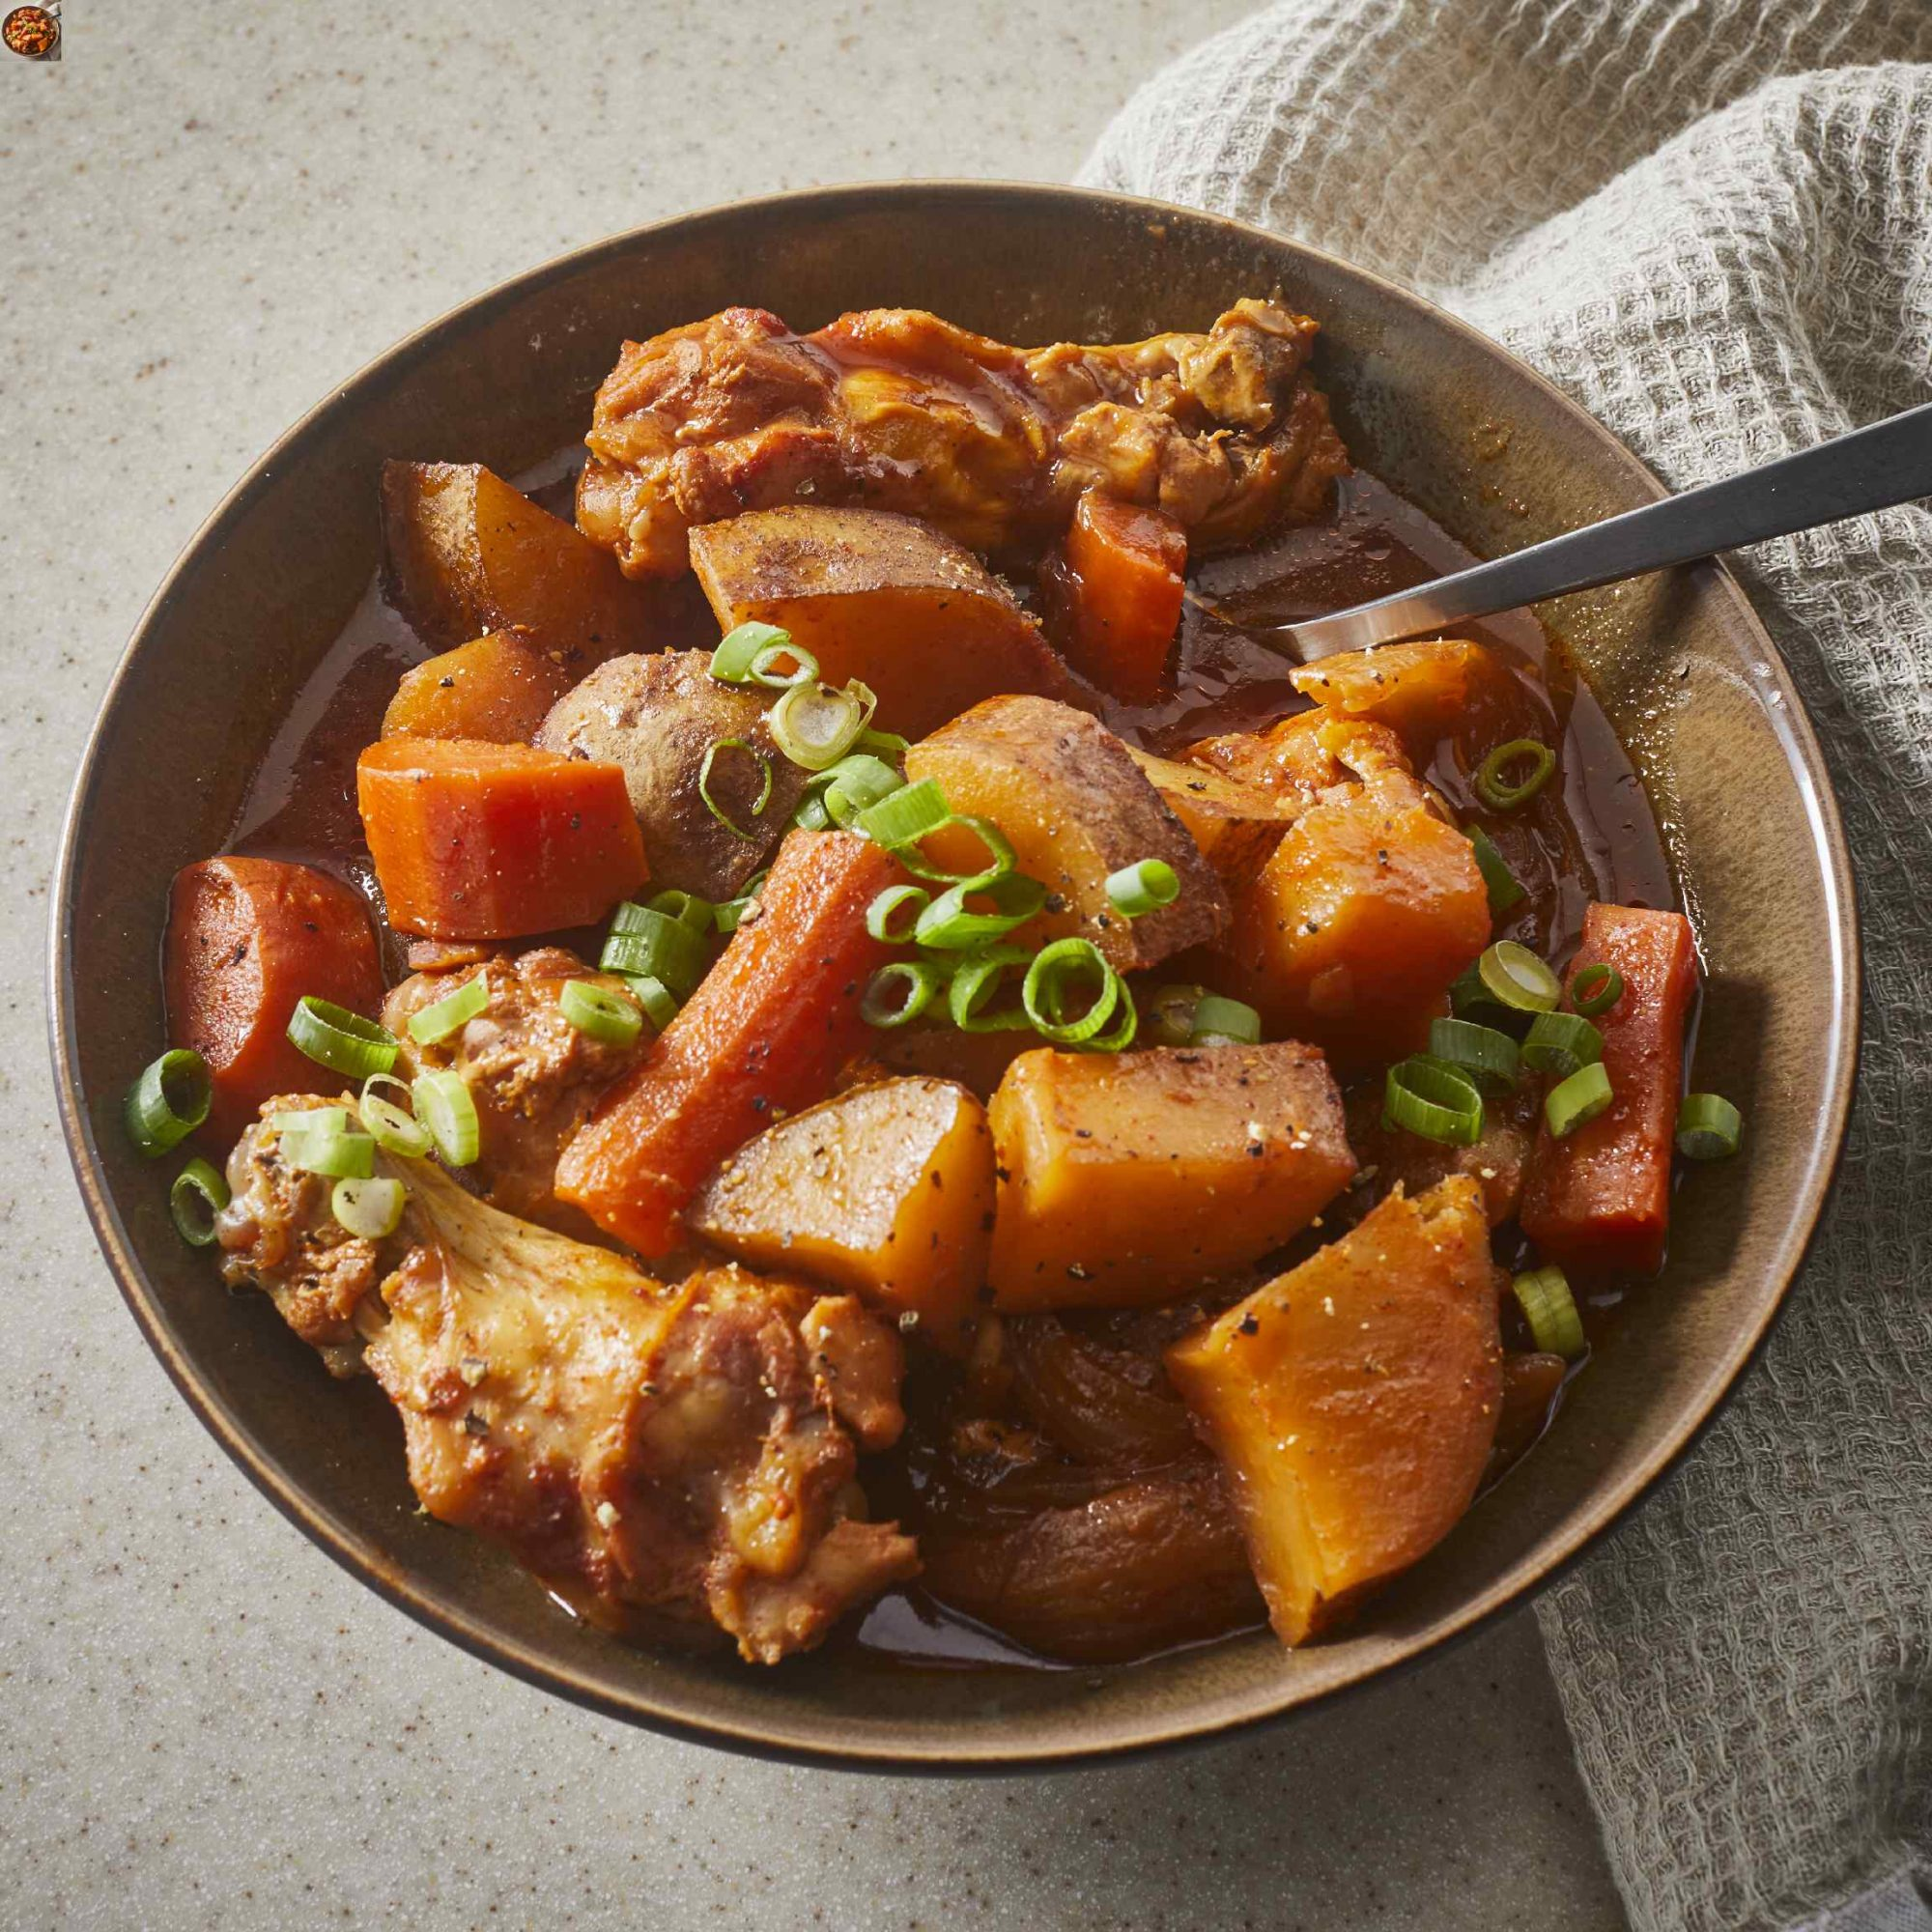 Korean Spicy Chicken and Potato in a brown bowl